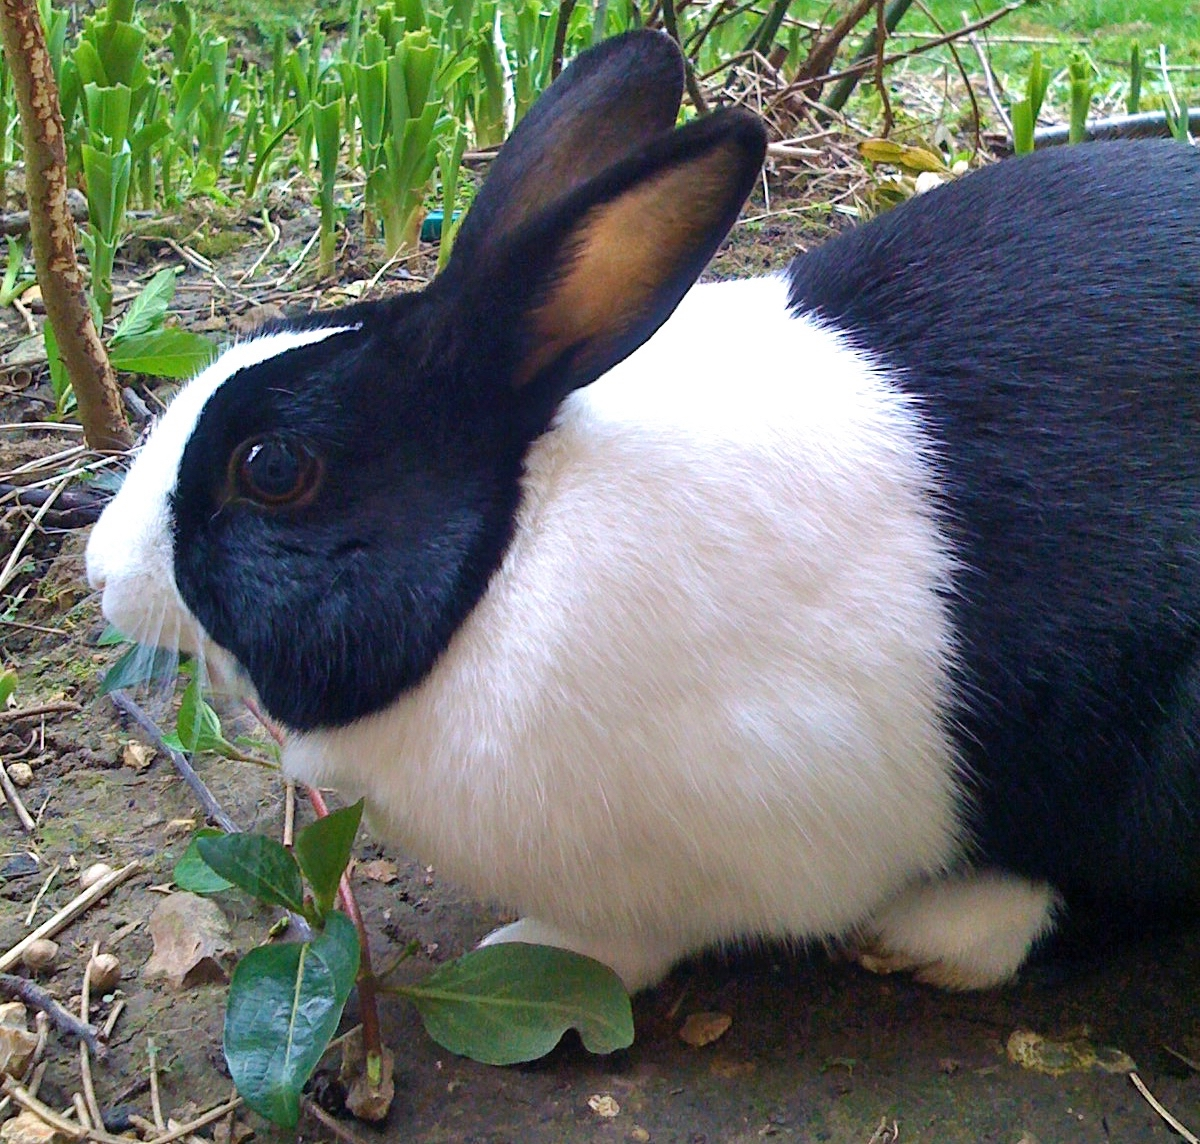 A close up photograph of a black and white rabbit